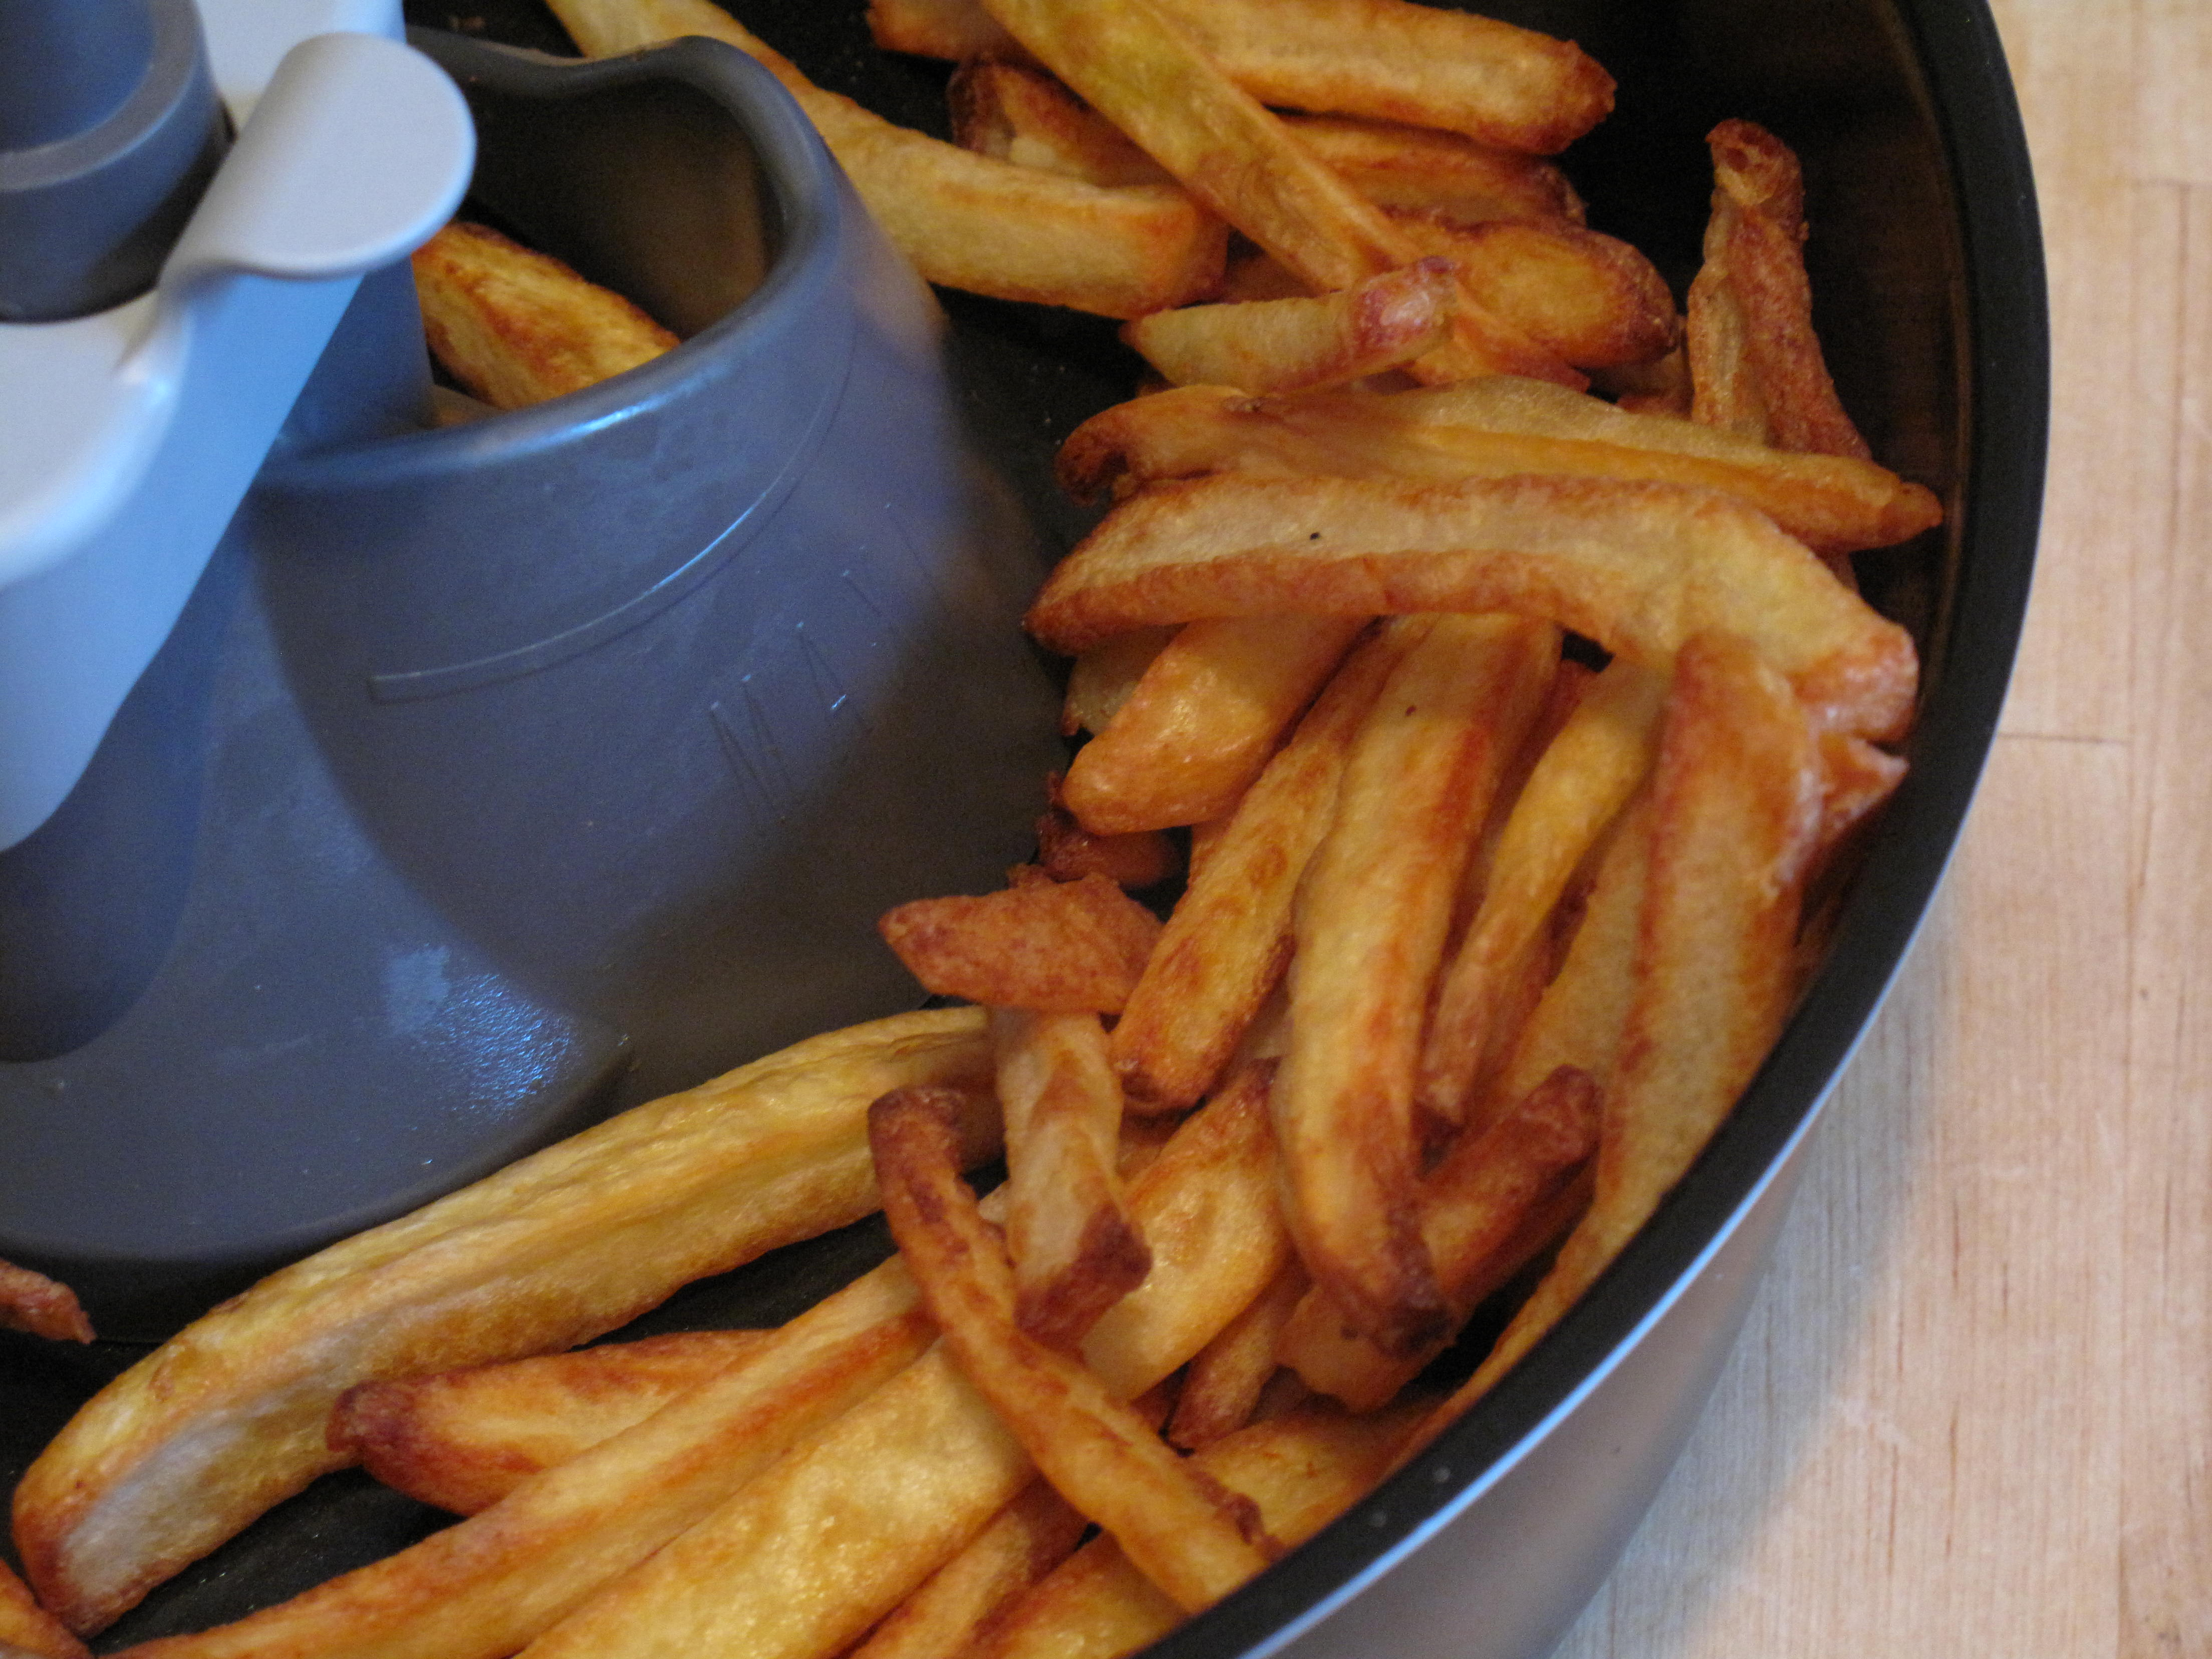 The finished fries.